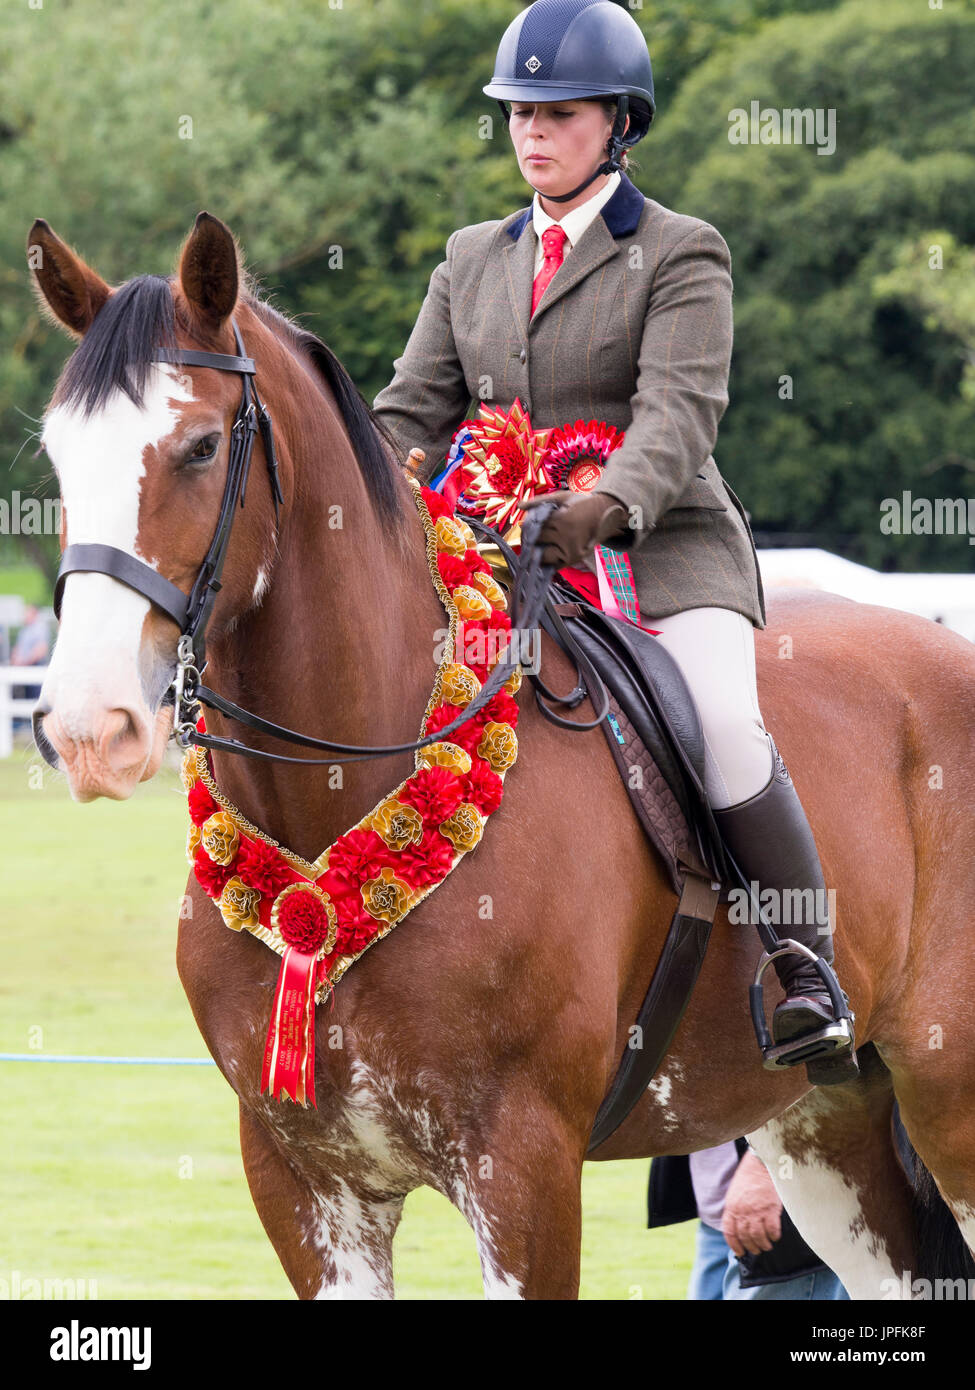 Turriff, Scotland, UK. 31st July, 2017. Prize winning Clydesdale horse in the Ridden Clydesdale section Credit: AC Images/Alamy Live News - Stock Image